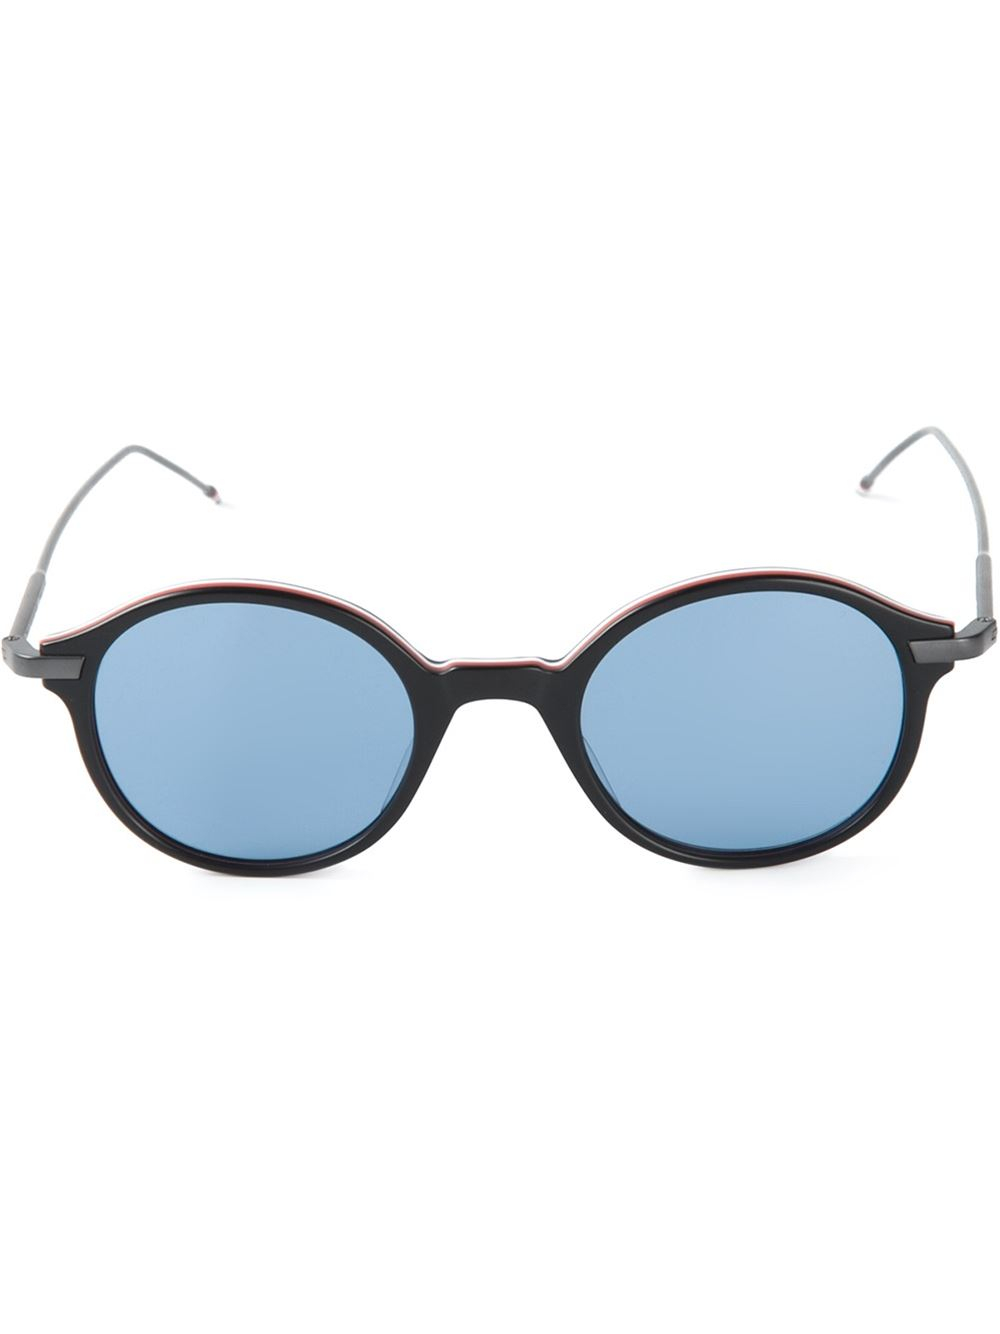 Round Gold Frame Sunglasses By Thom Browne : Thom Browne Black Round Frame Sunglasses Lyst